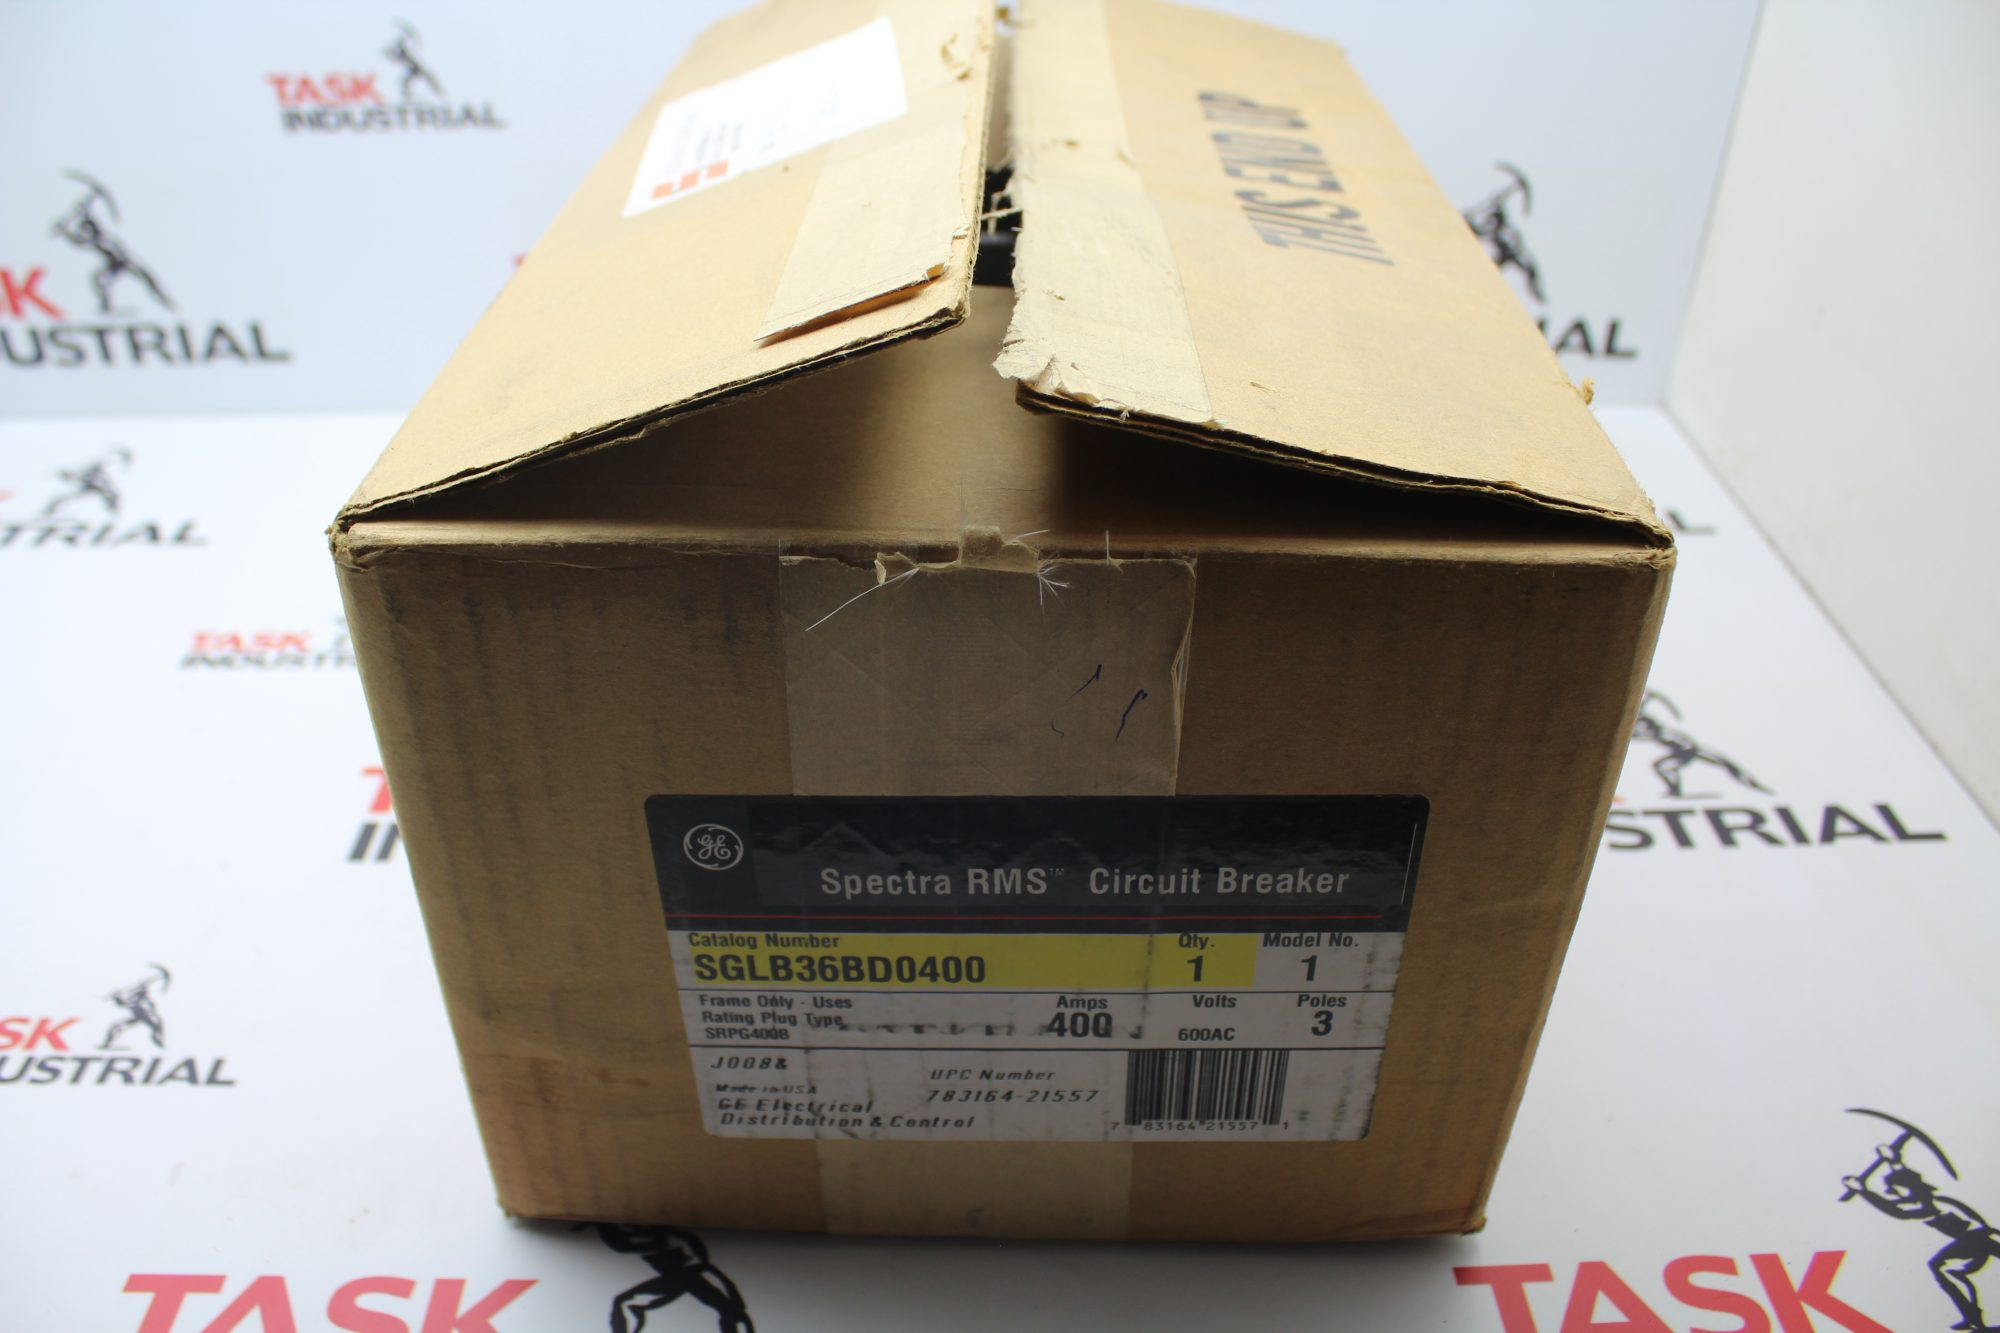 Ge Spectra Rms Current Limiting Circuit Breaker Solb36cd0400 400 Amp 600vac Max 3 Pole